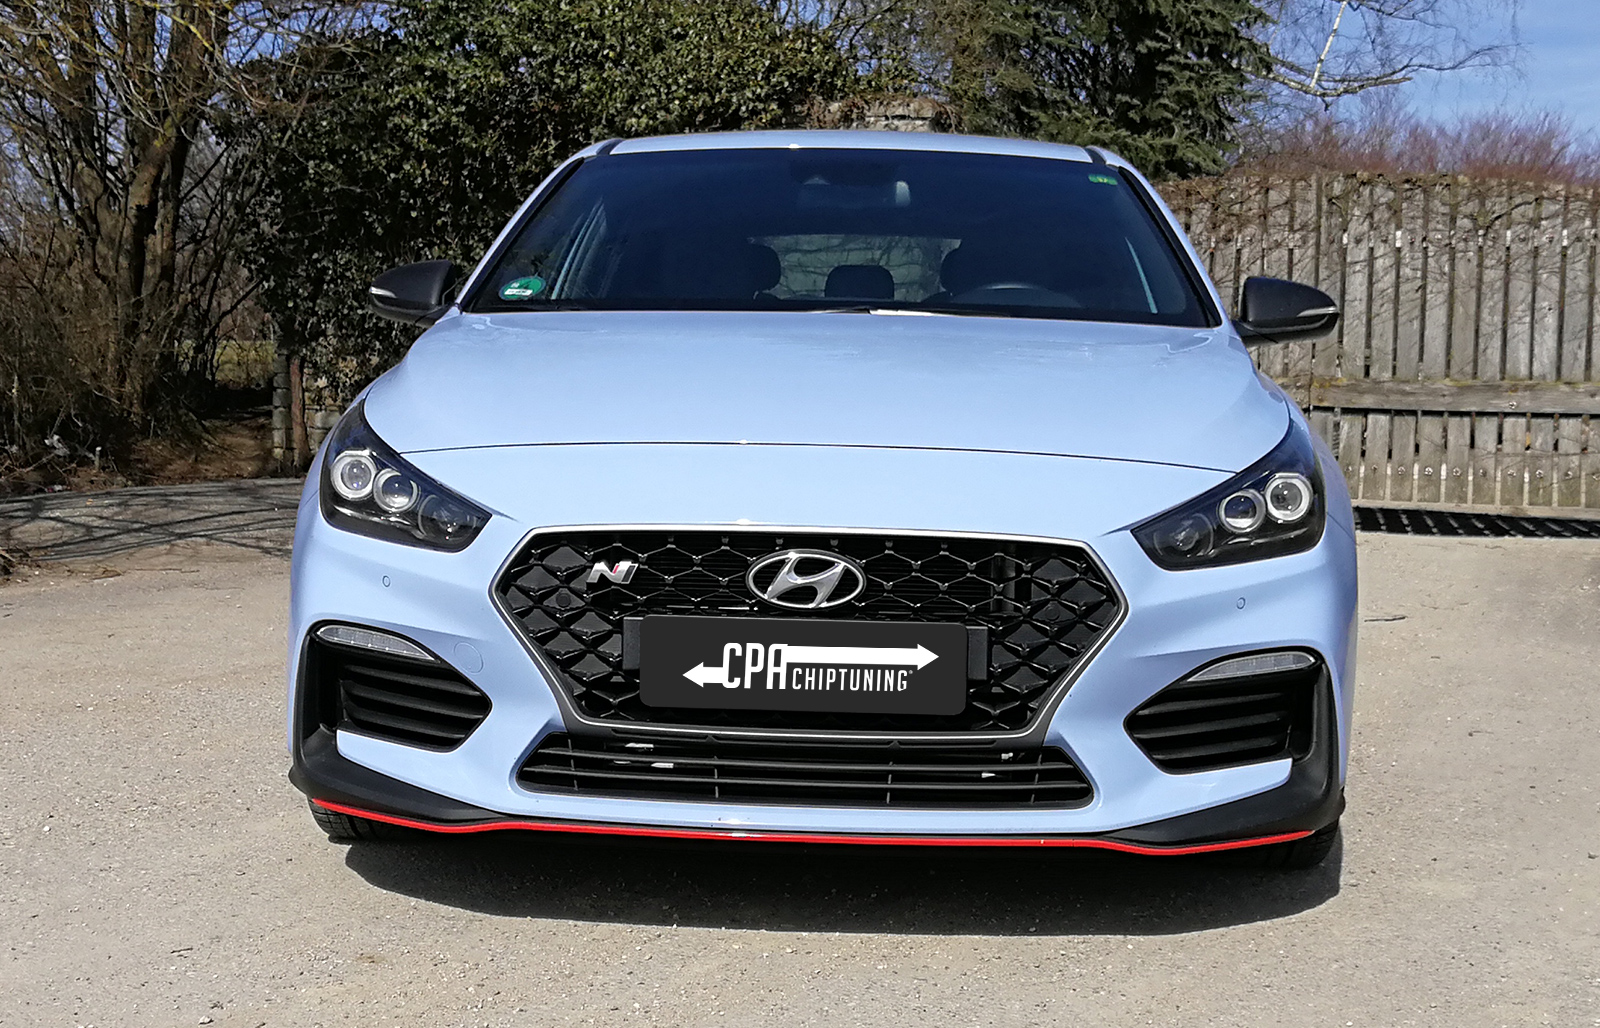 chiptuning hyundai i30 n t gdi performance. Black Bedroom Furniture Sets. Home Design Ideas